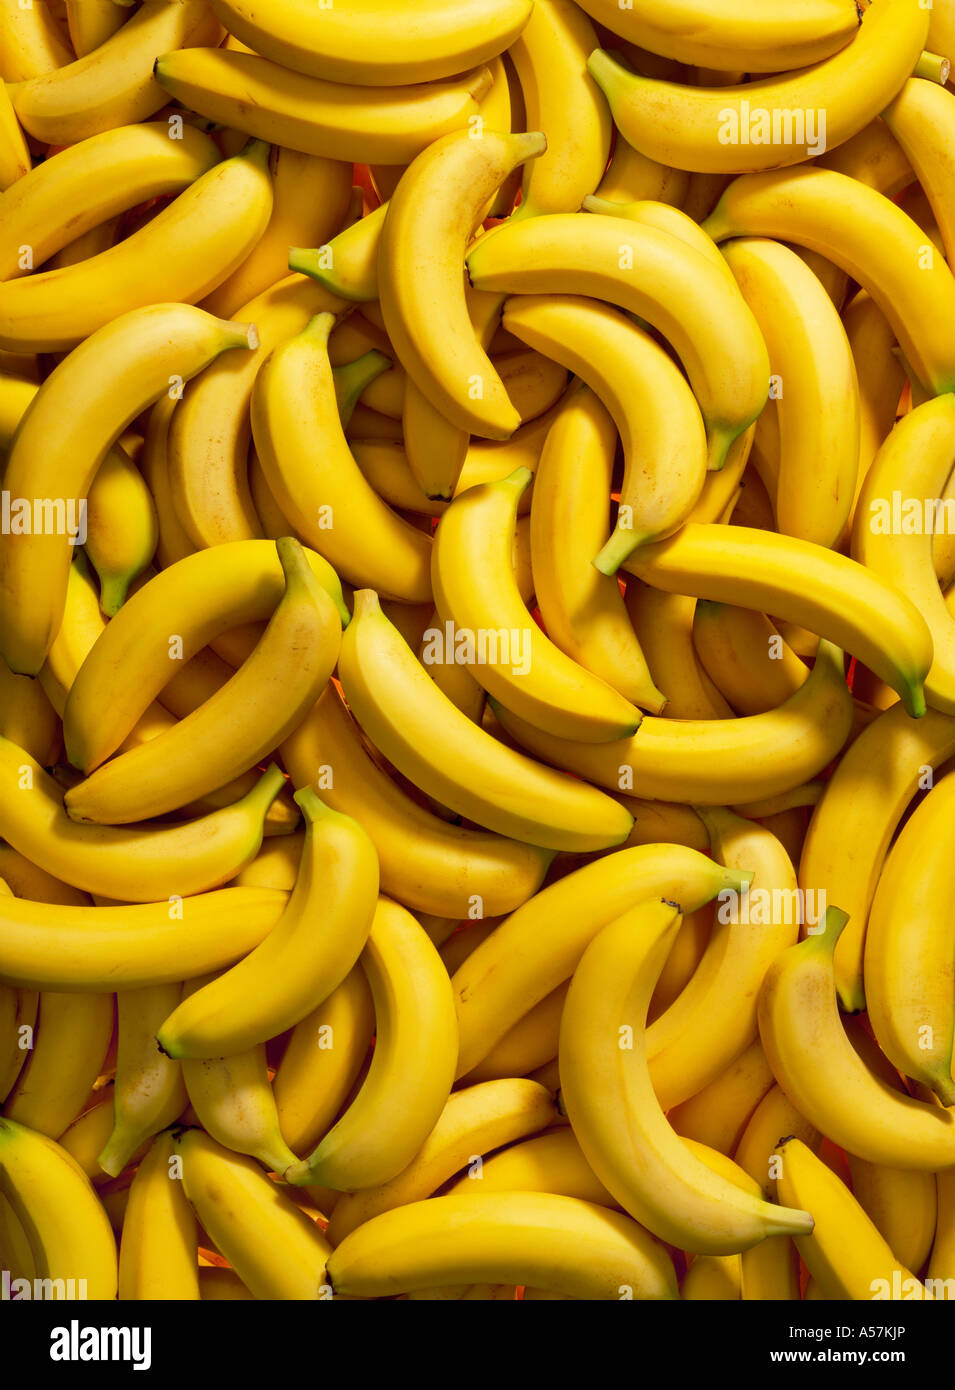 A pile of Bananas. Ideal as a backdrop or background - Stock Image